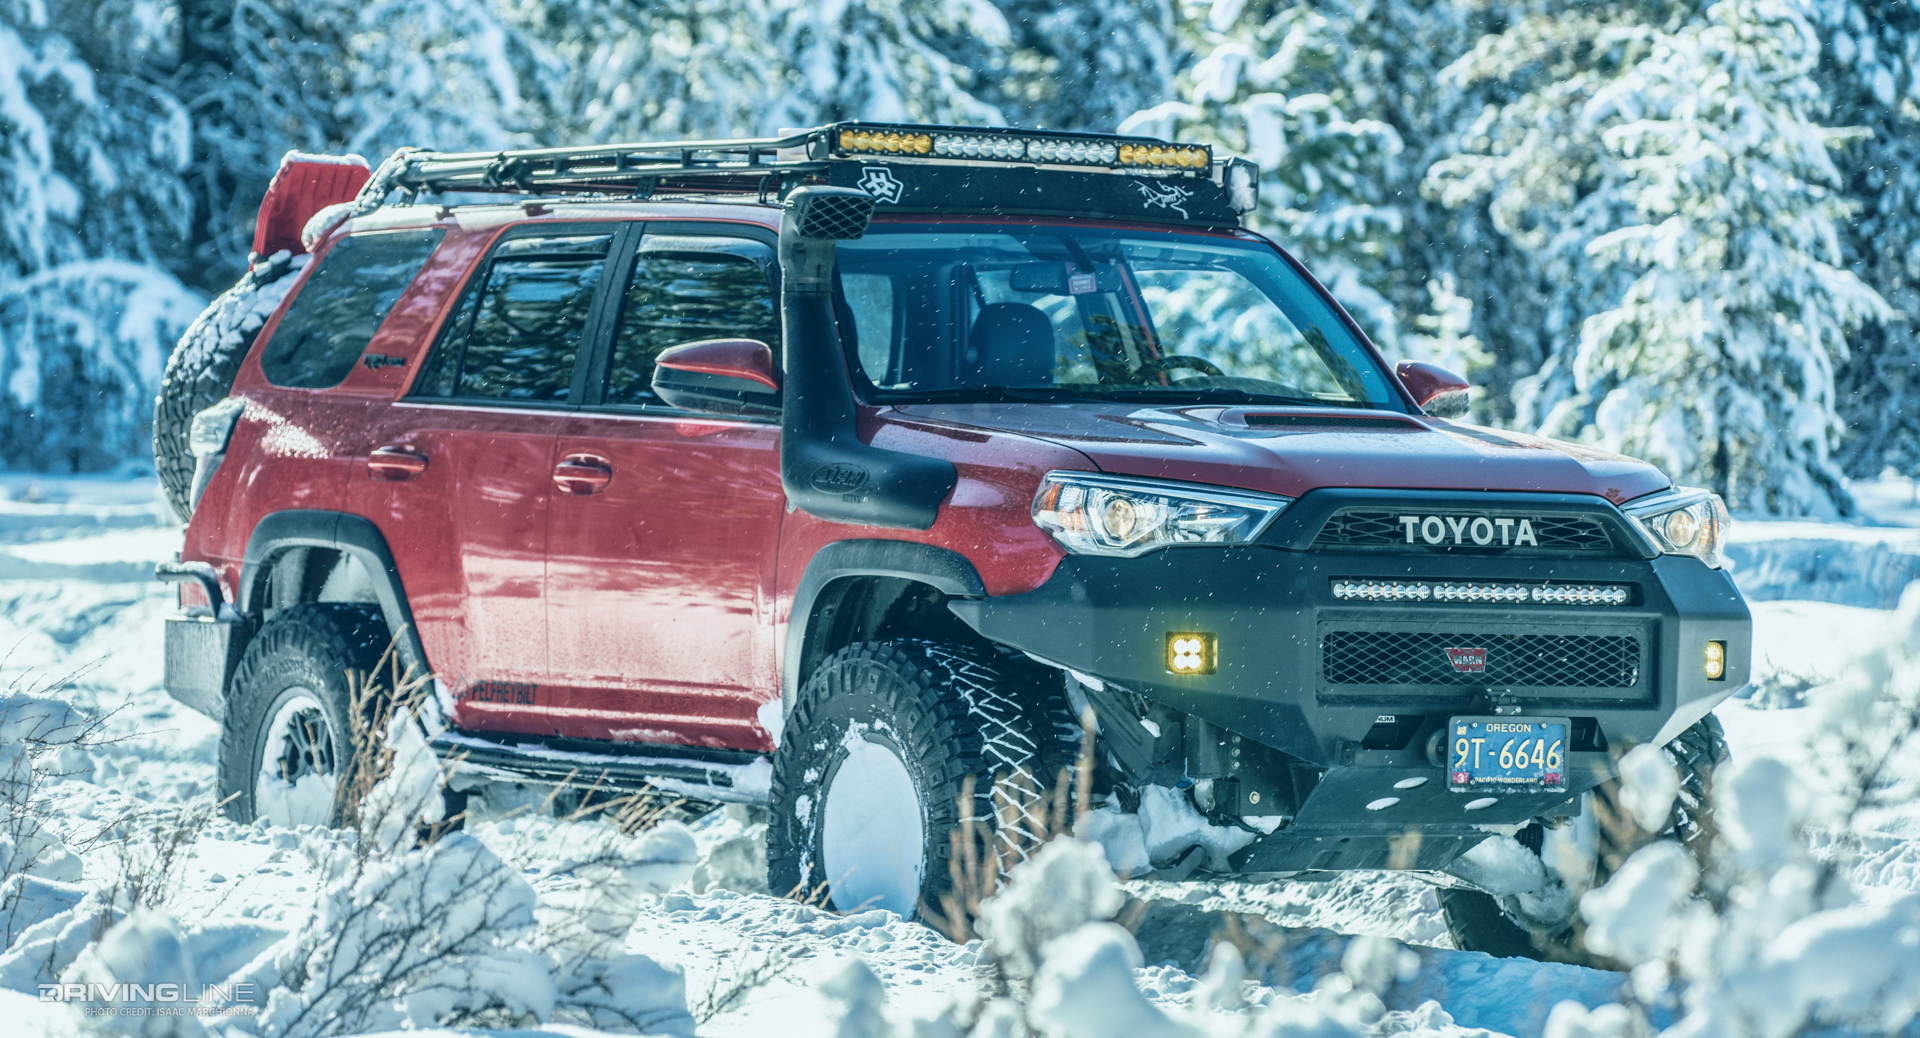 Celebrating Wanderlust With an Overlanding-Equipped Toyota 4Runner